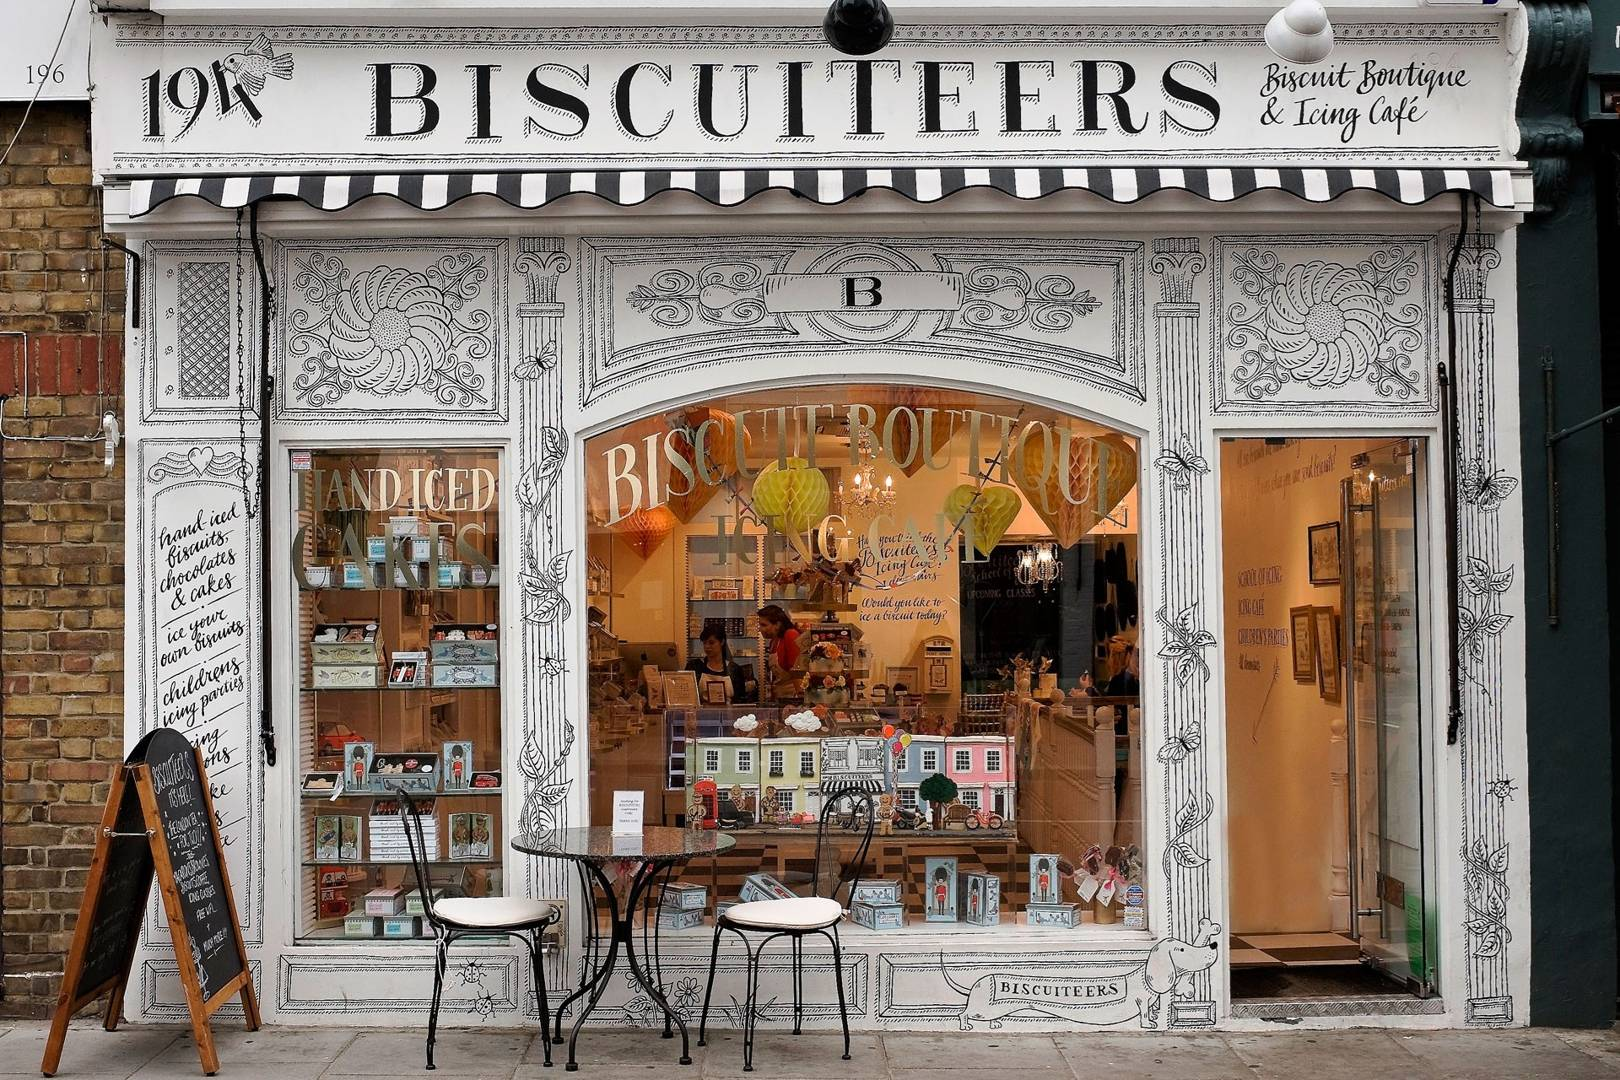 Best quirky and unusual cafes in London | CN Traveller